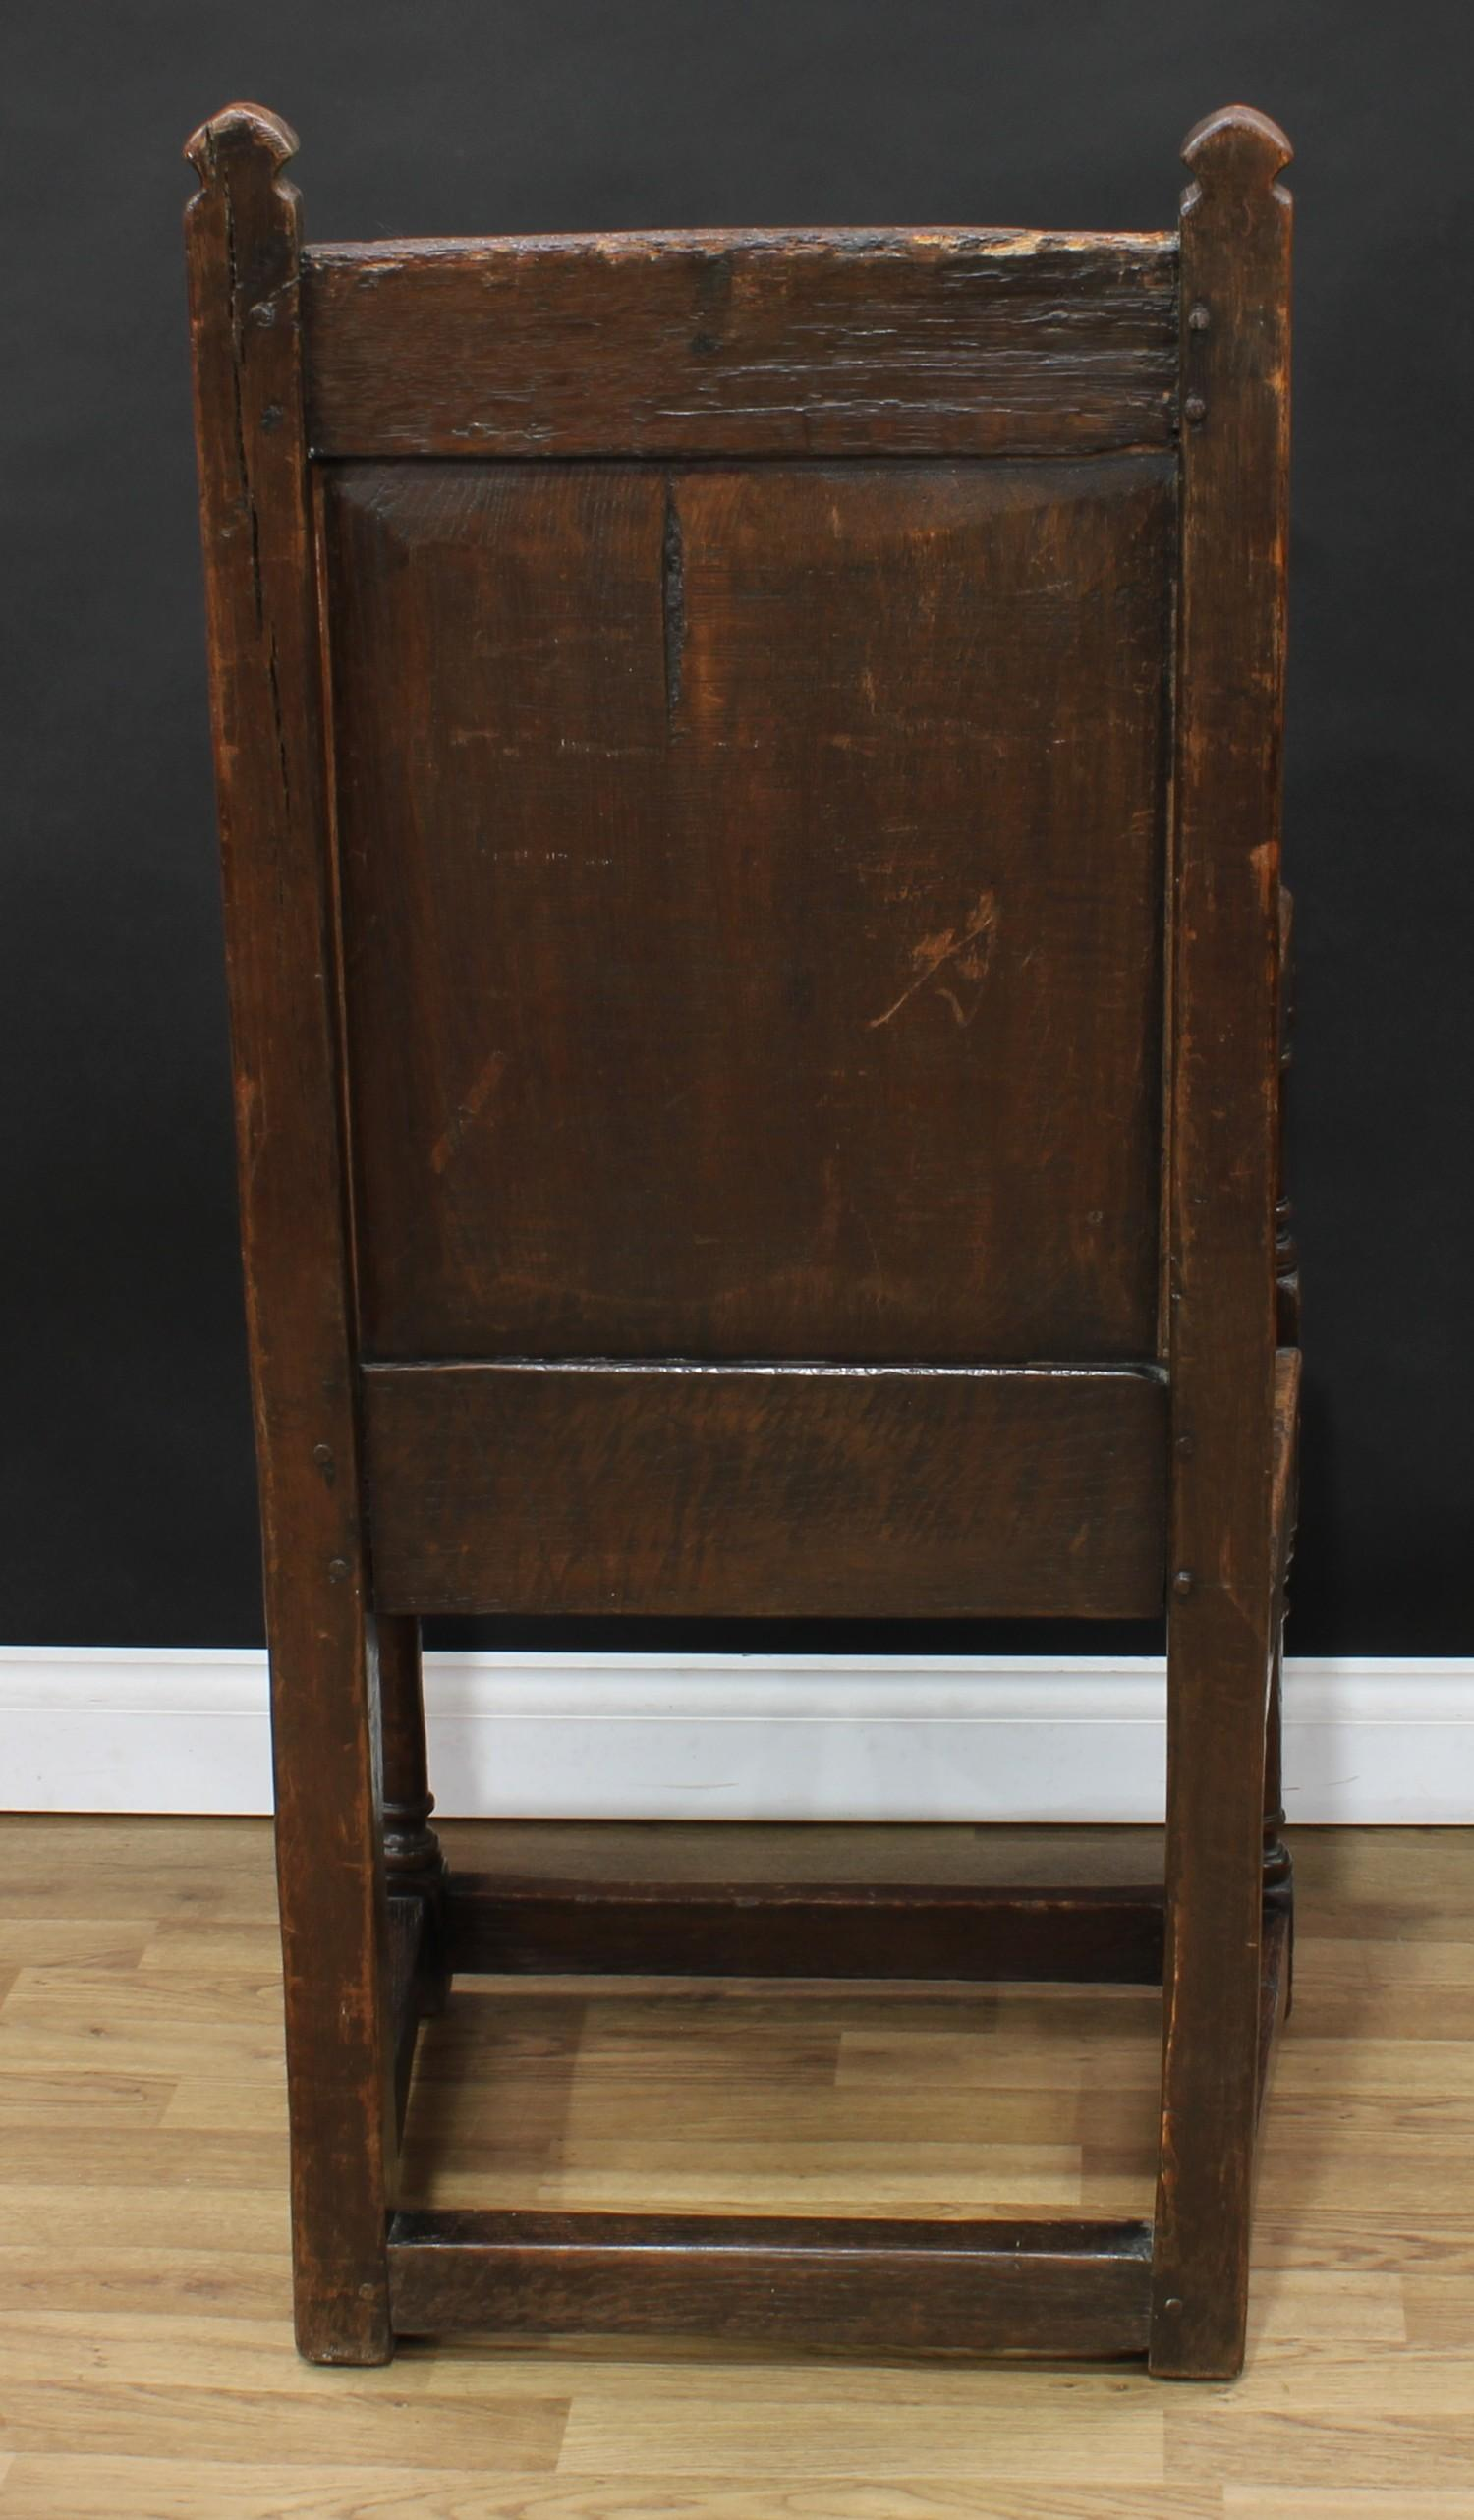 An 18th century oak Wainscot armchair, possibly Cheshire, rectangular cresting rail carved with - Image 4 of 4